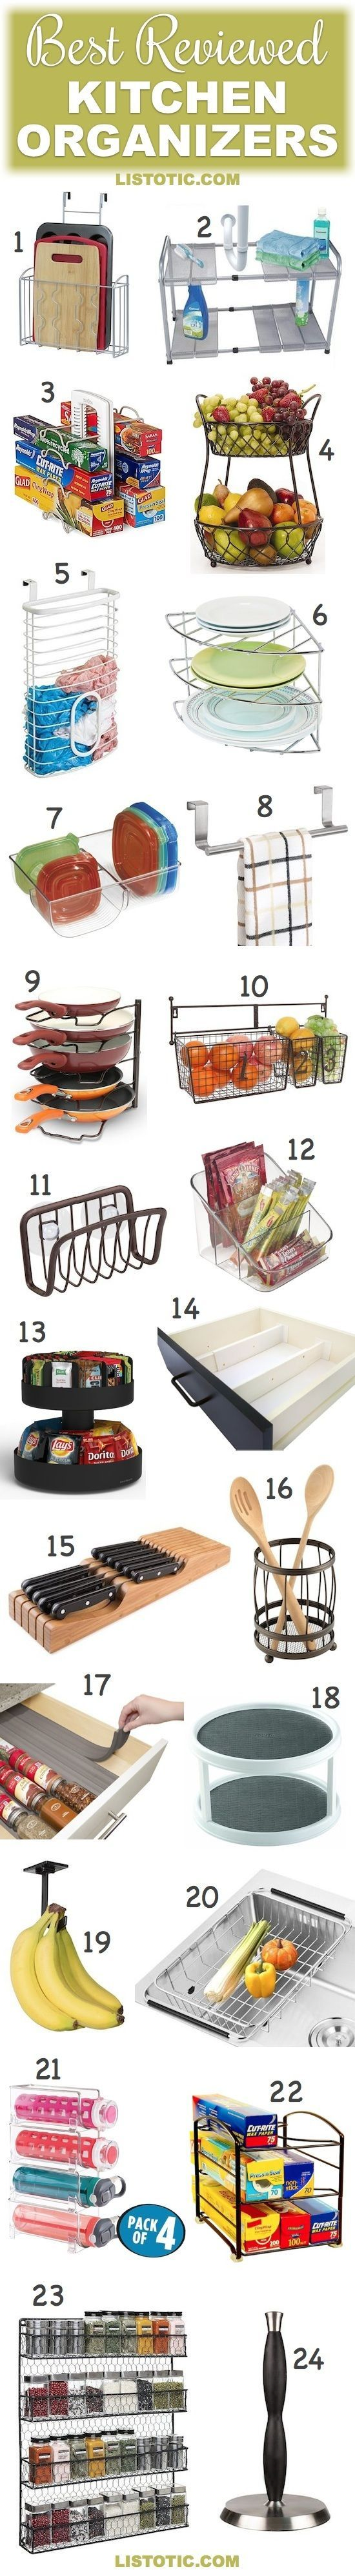 24 Best Reviewed Kitchen Organizers Amazon Prime Organisation IdeasOrganizing